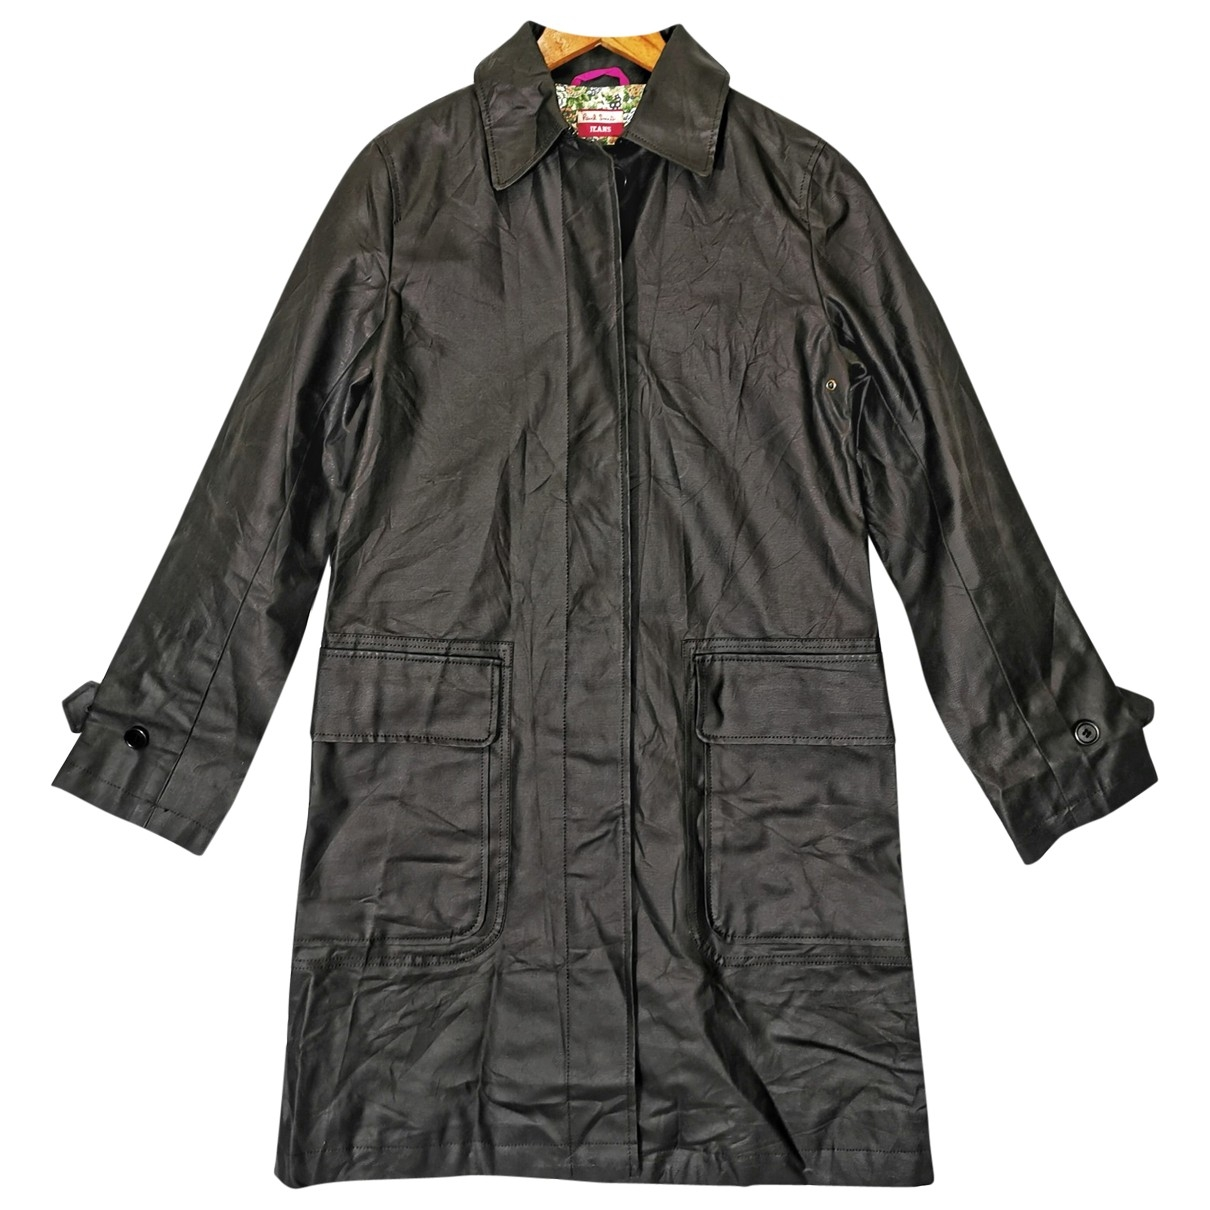 Paul Smith \N Cotton jacket for Women 40 FR